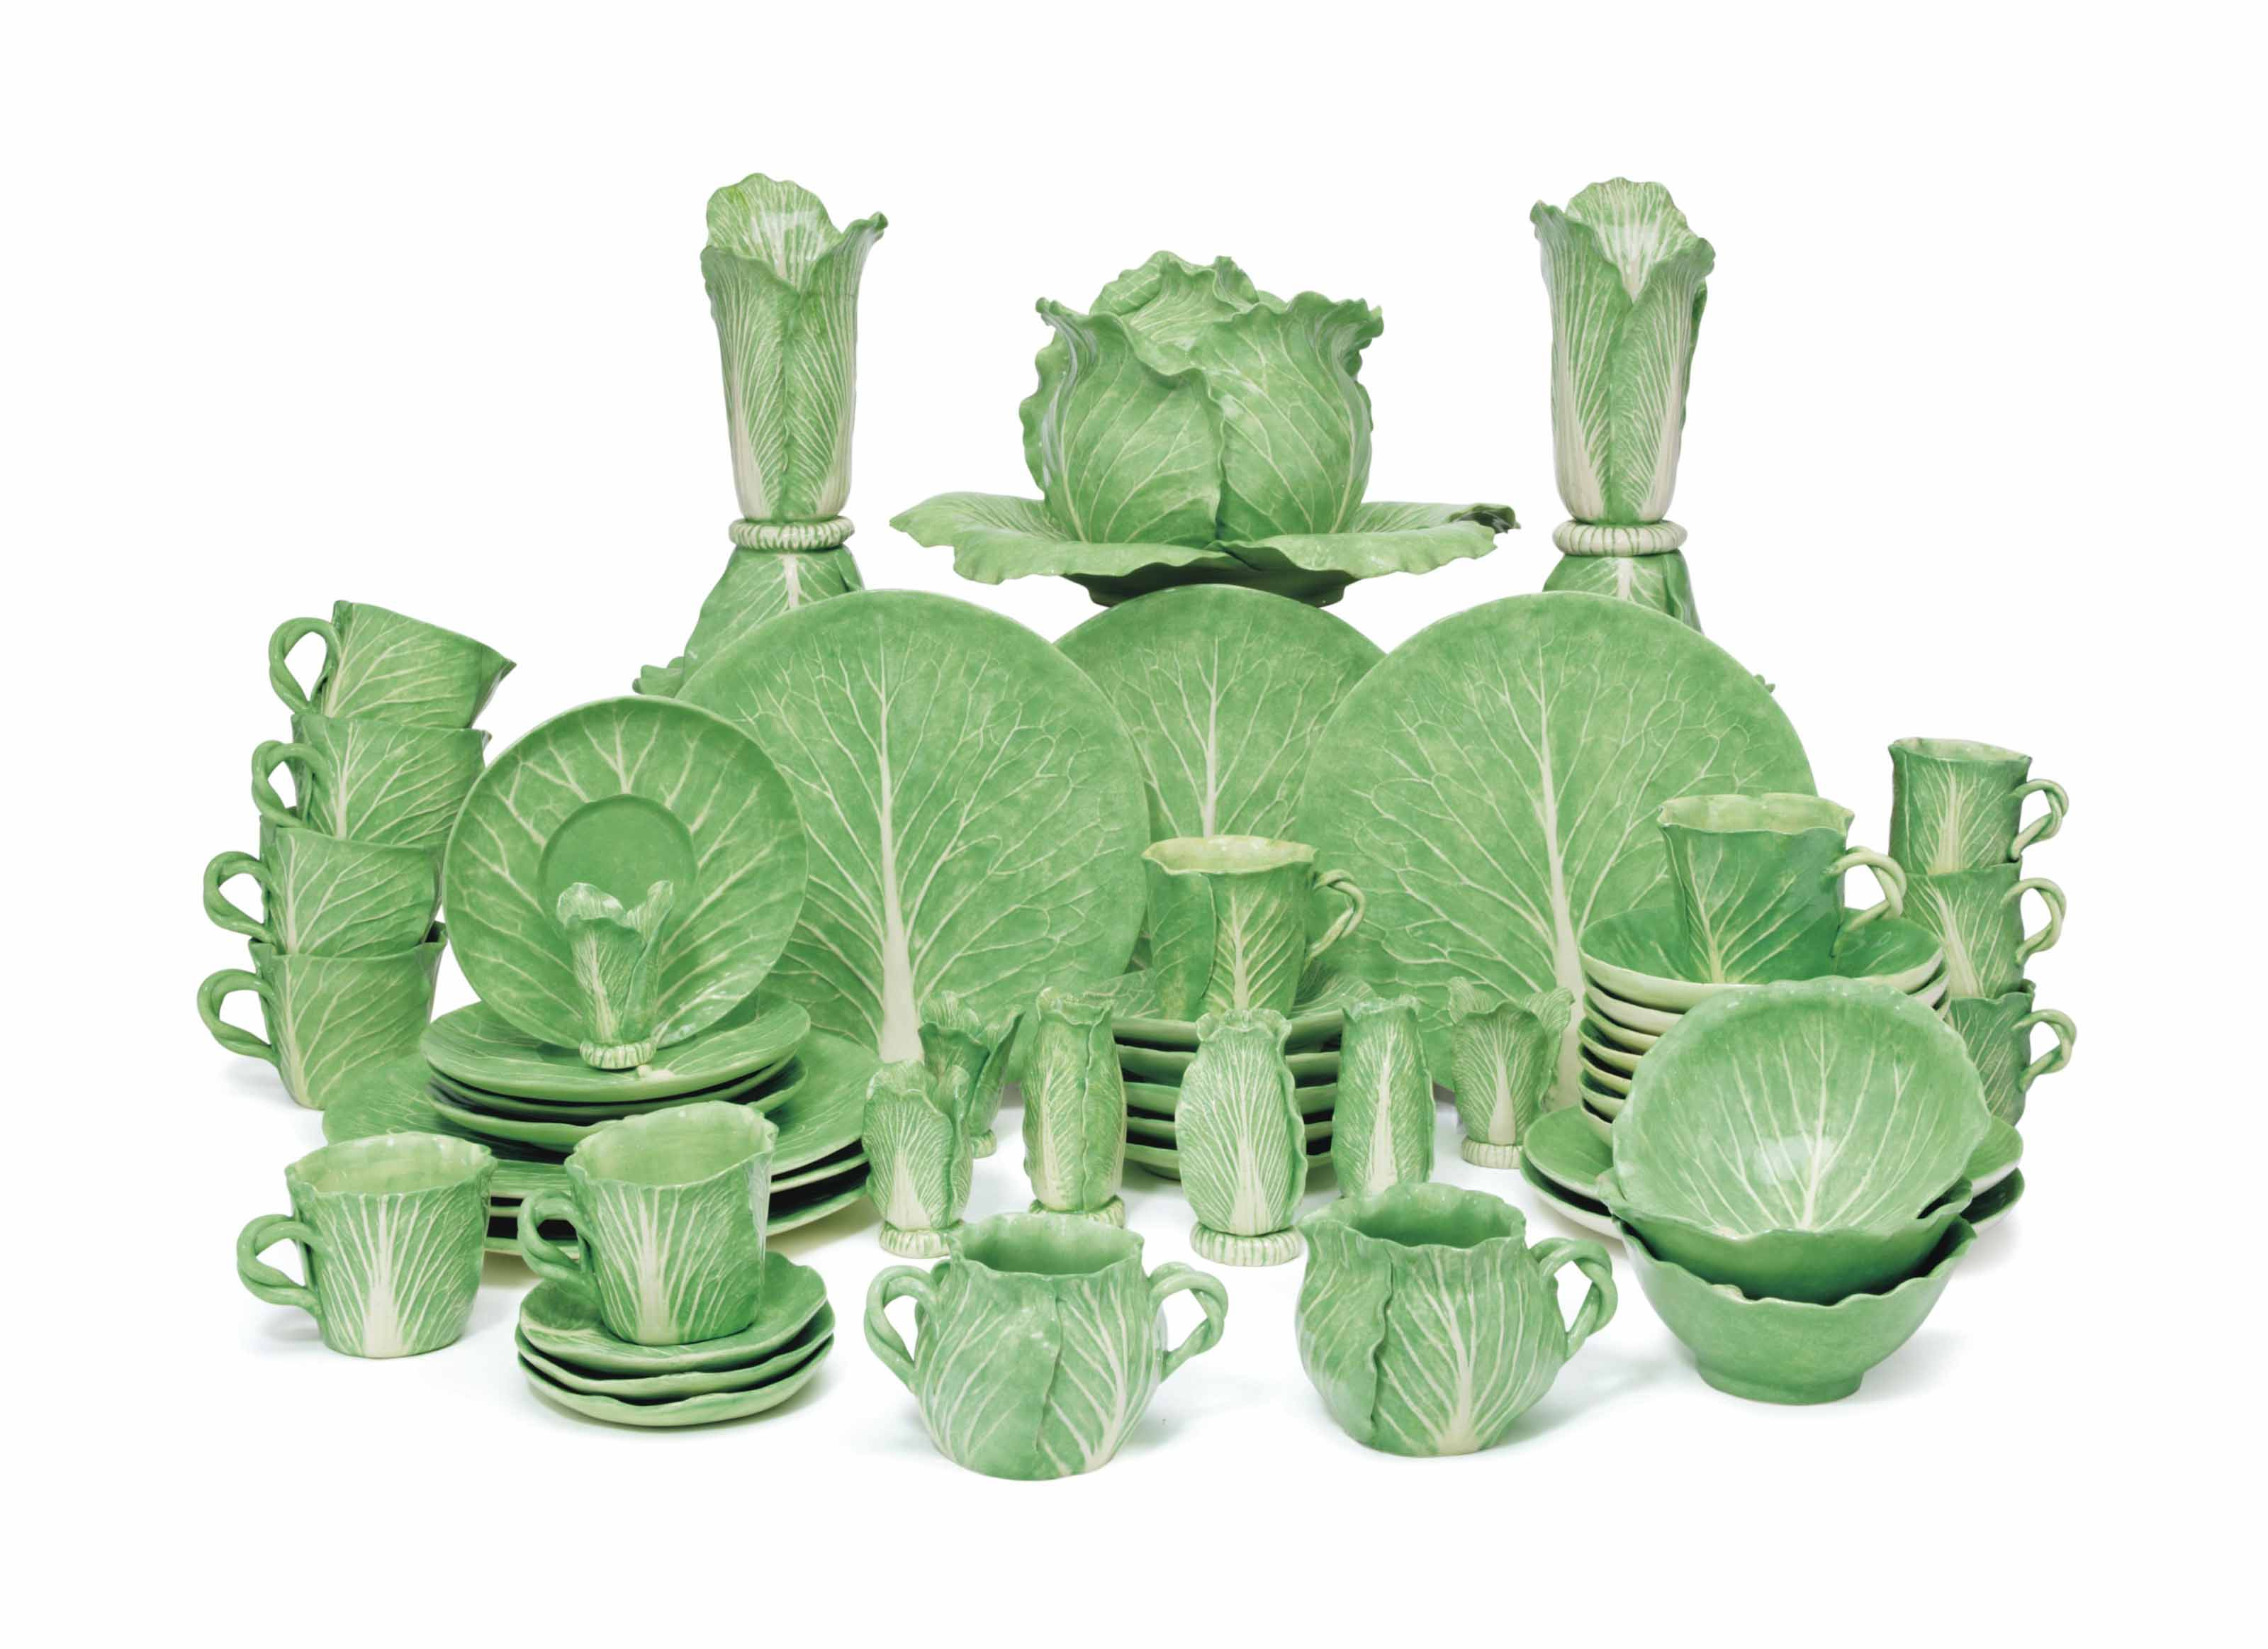 AN ASSEMBLED DODIE THAYER LETTUCE-LEAF LUNCHEON SET